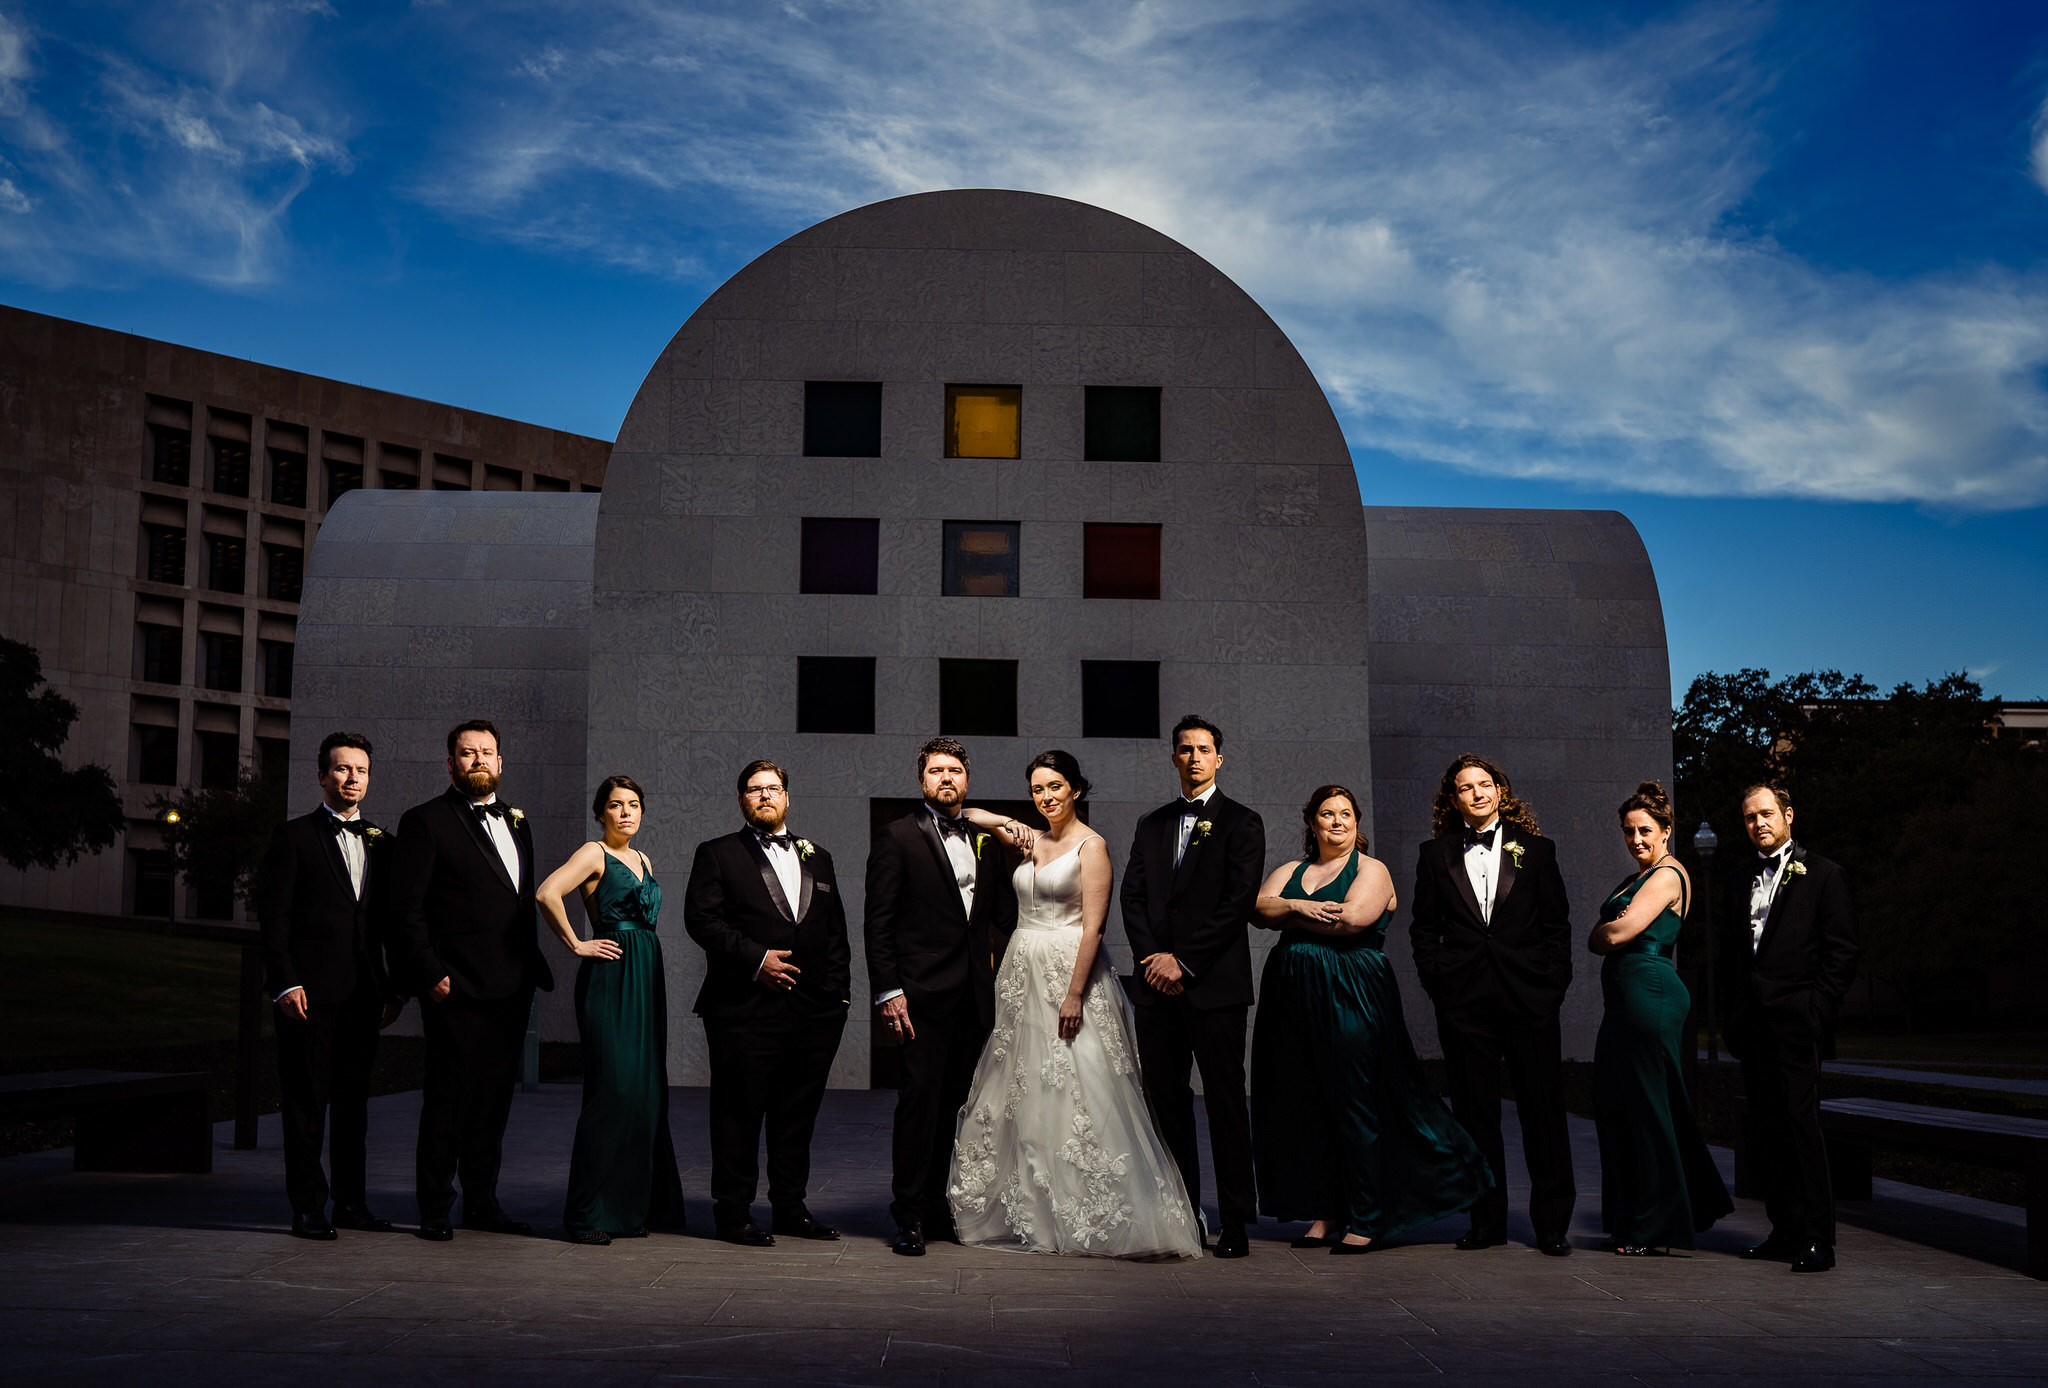 Group shot in front of austere architecture - photo by John Winters Photography